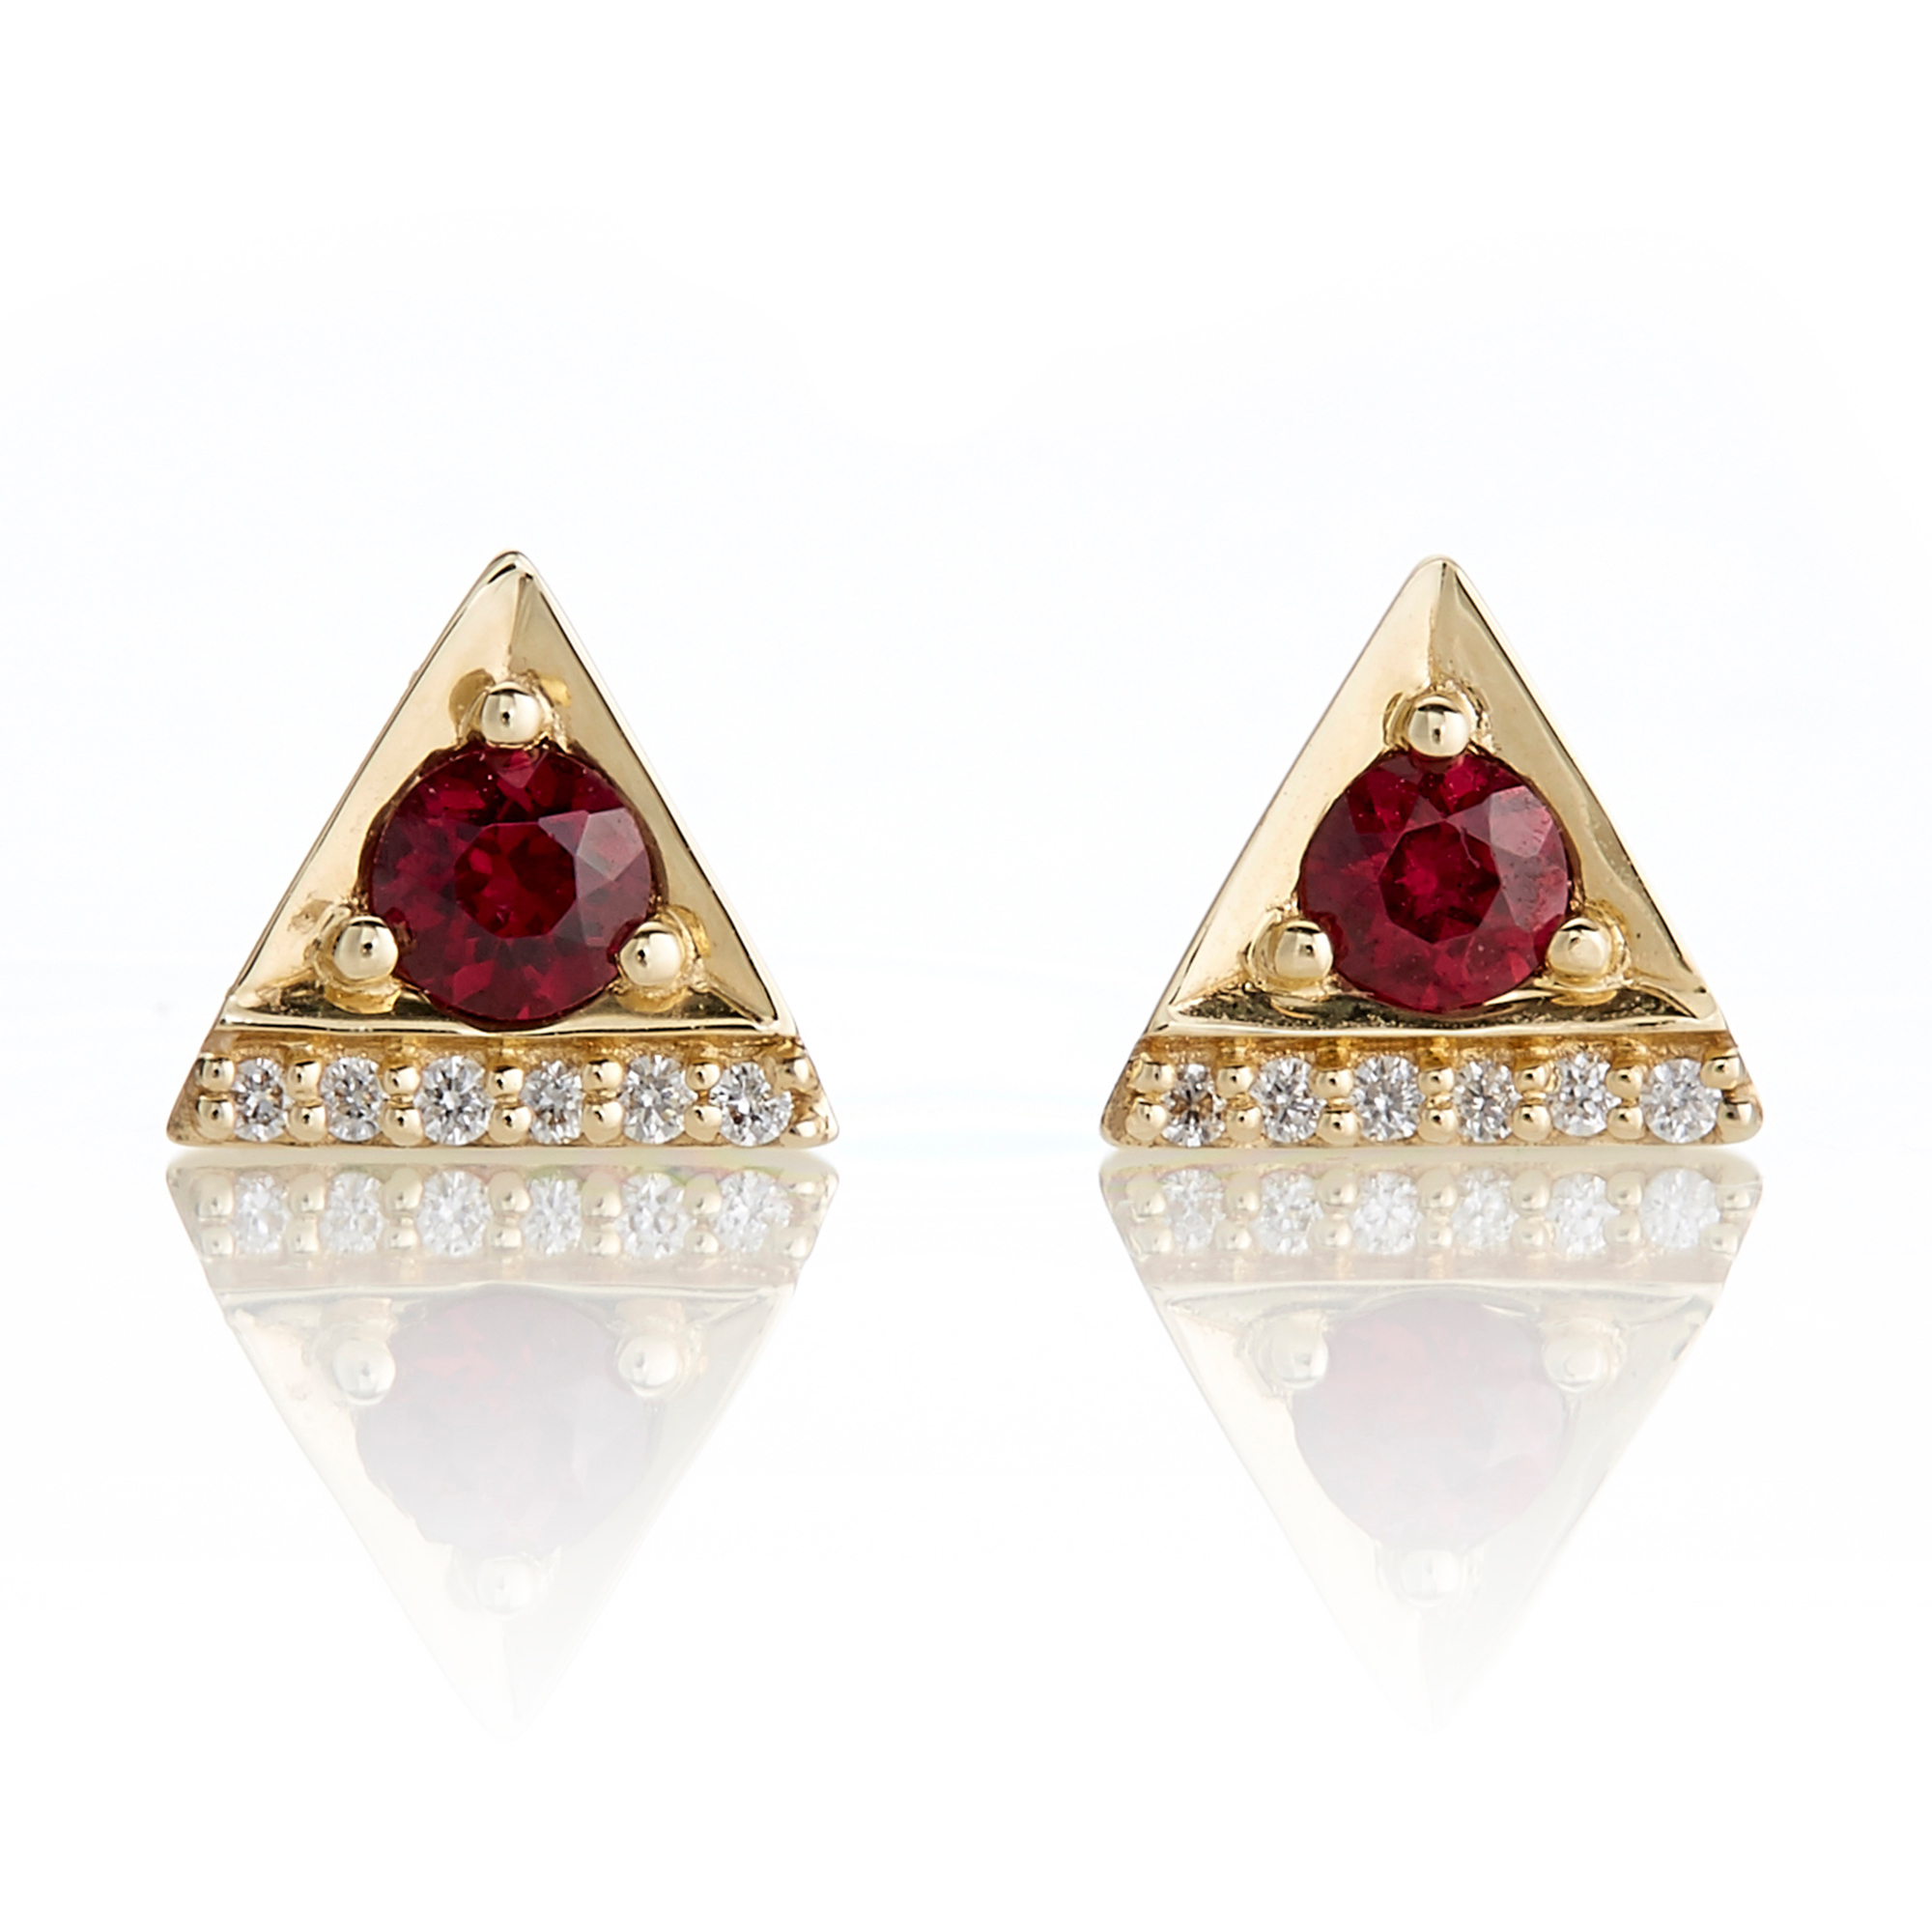 Jane Taylor Petite Red Garnet & Diamond Triangle Stud Earrings